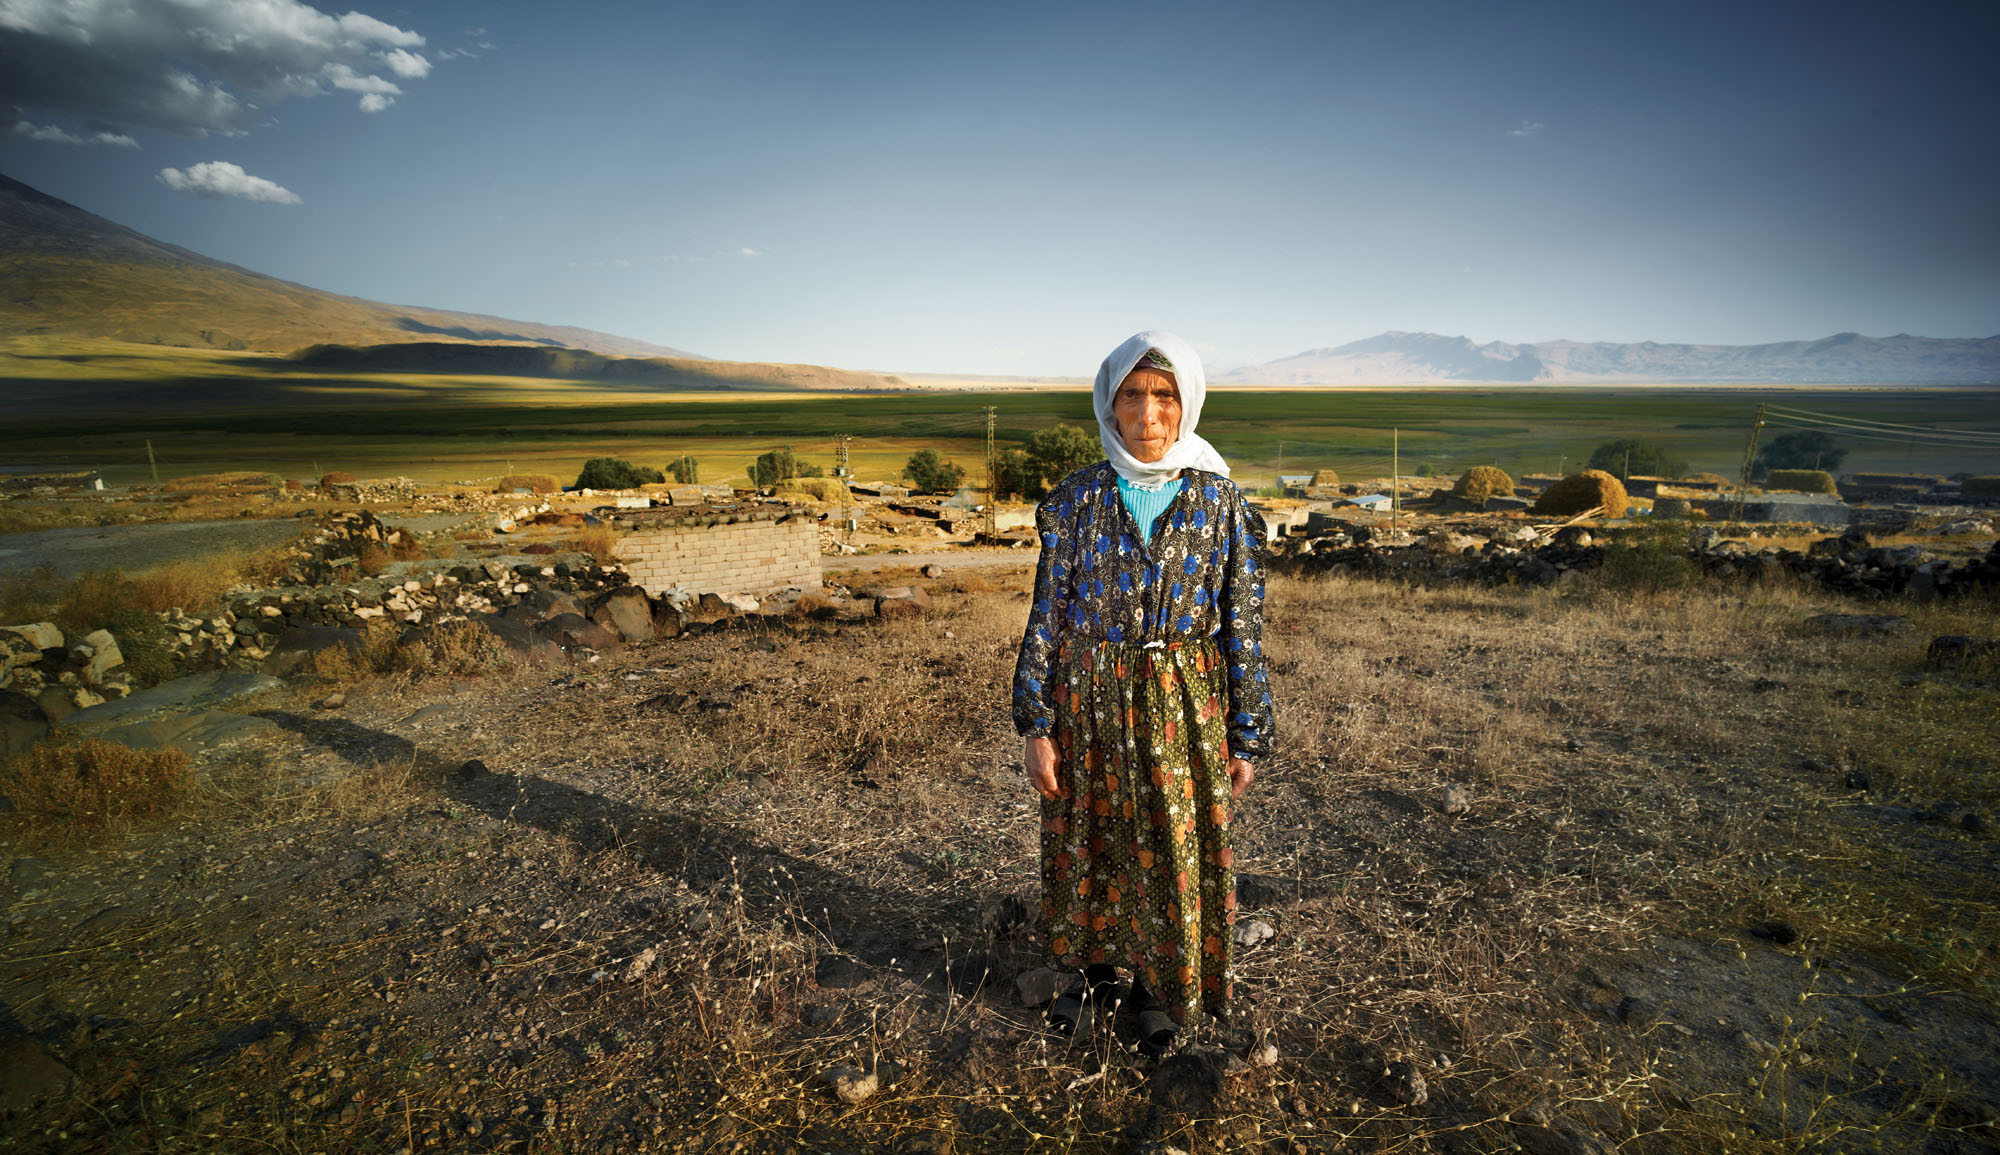 Kurdish woman, Eastern Turkey. Phase One A-Series, P65+, 23mm lens, f8 @ 1/30 second, ISO 50